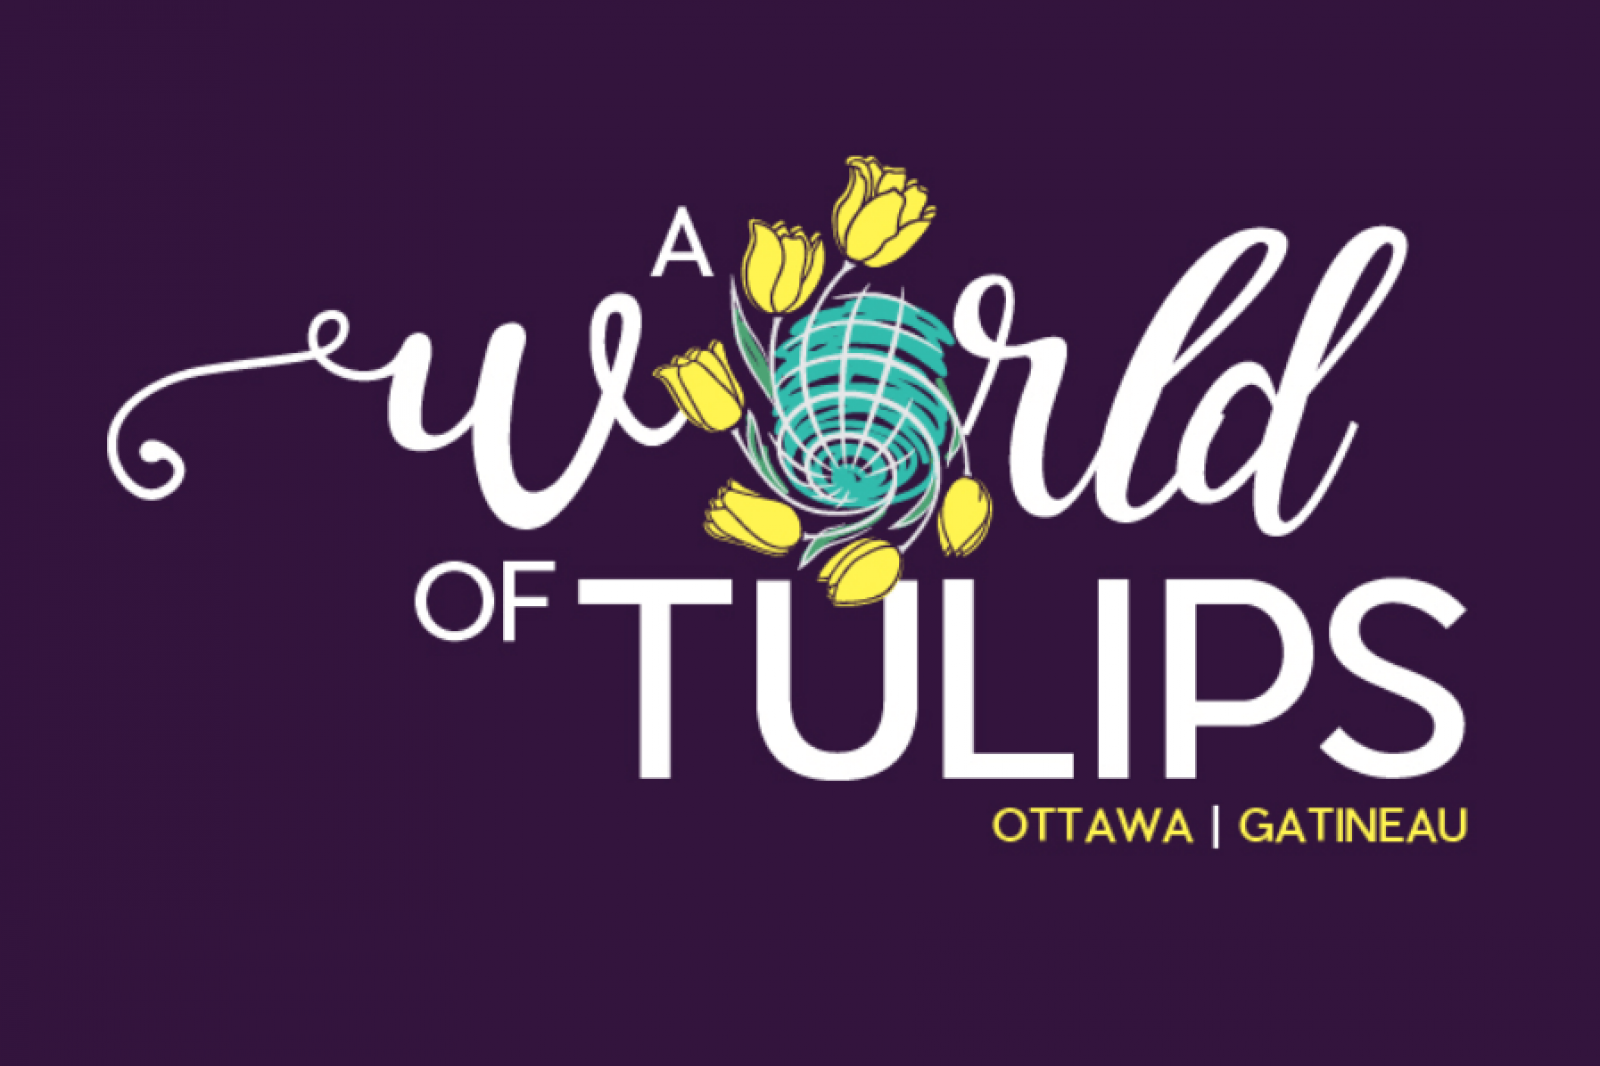 Tulip Festival welcomes festivals from around the world